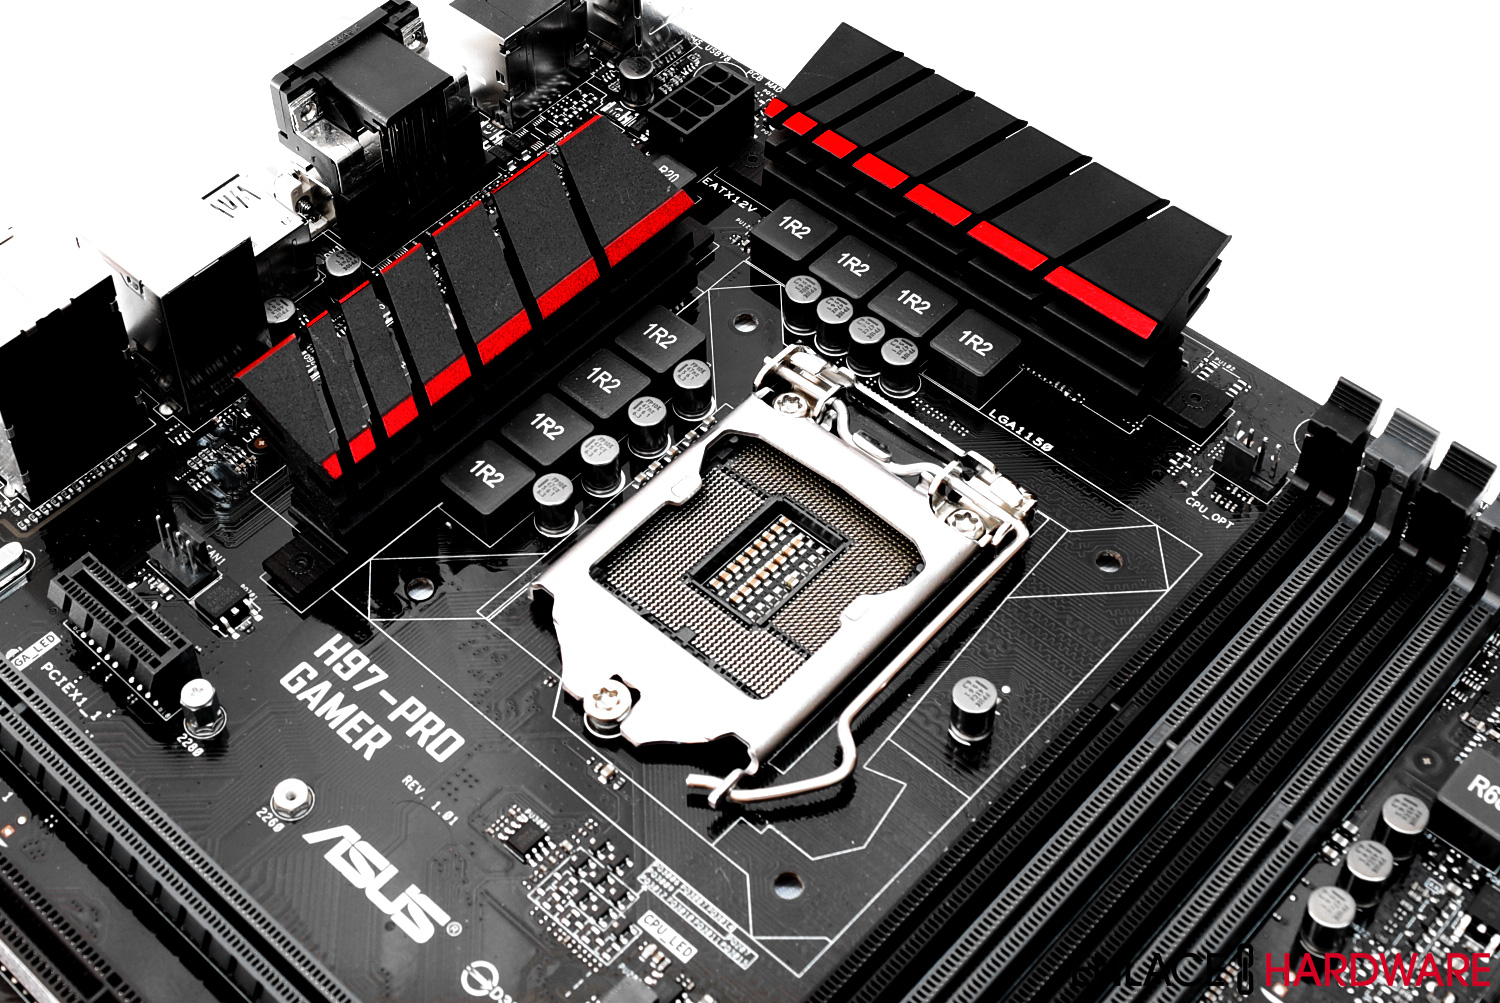 ASUS-H97-Pro-Gamer-Review-5